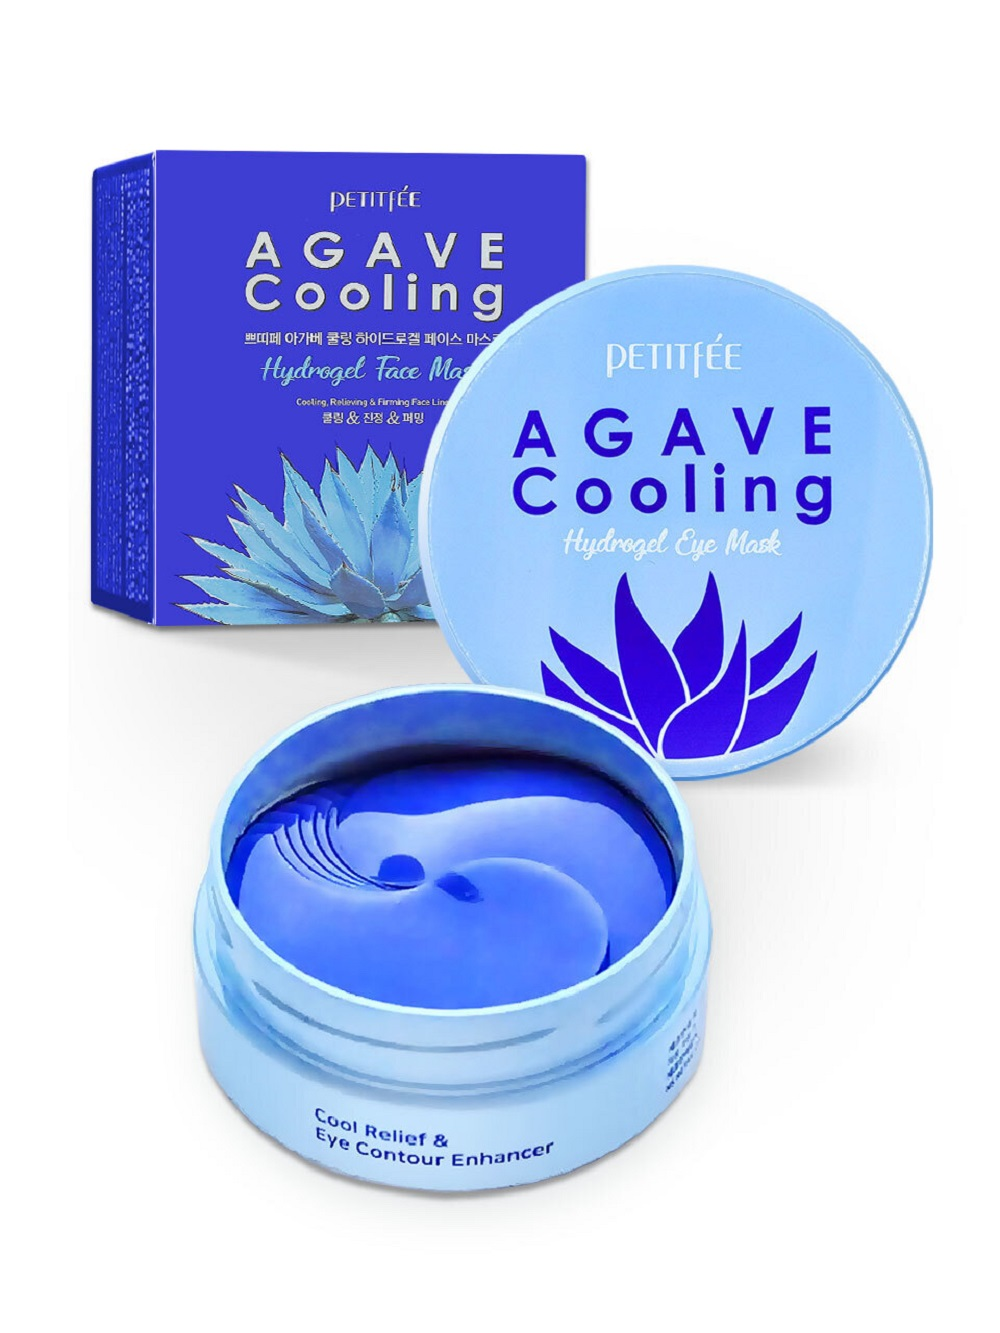 Agave cooling hydrogel eye patch